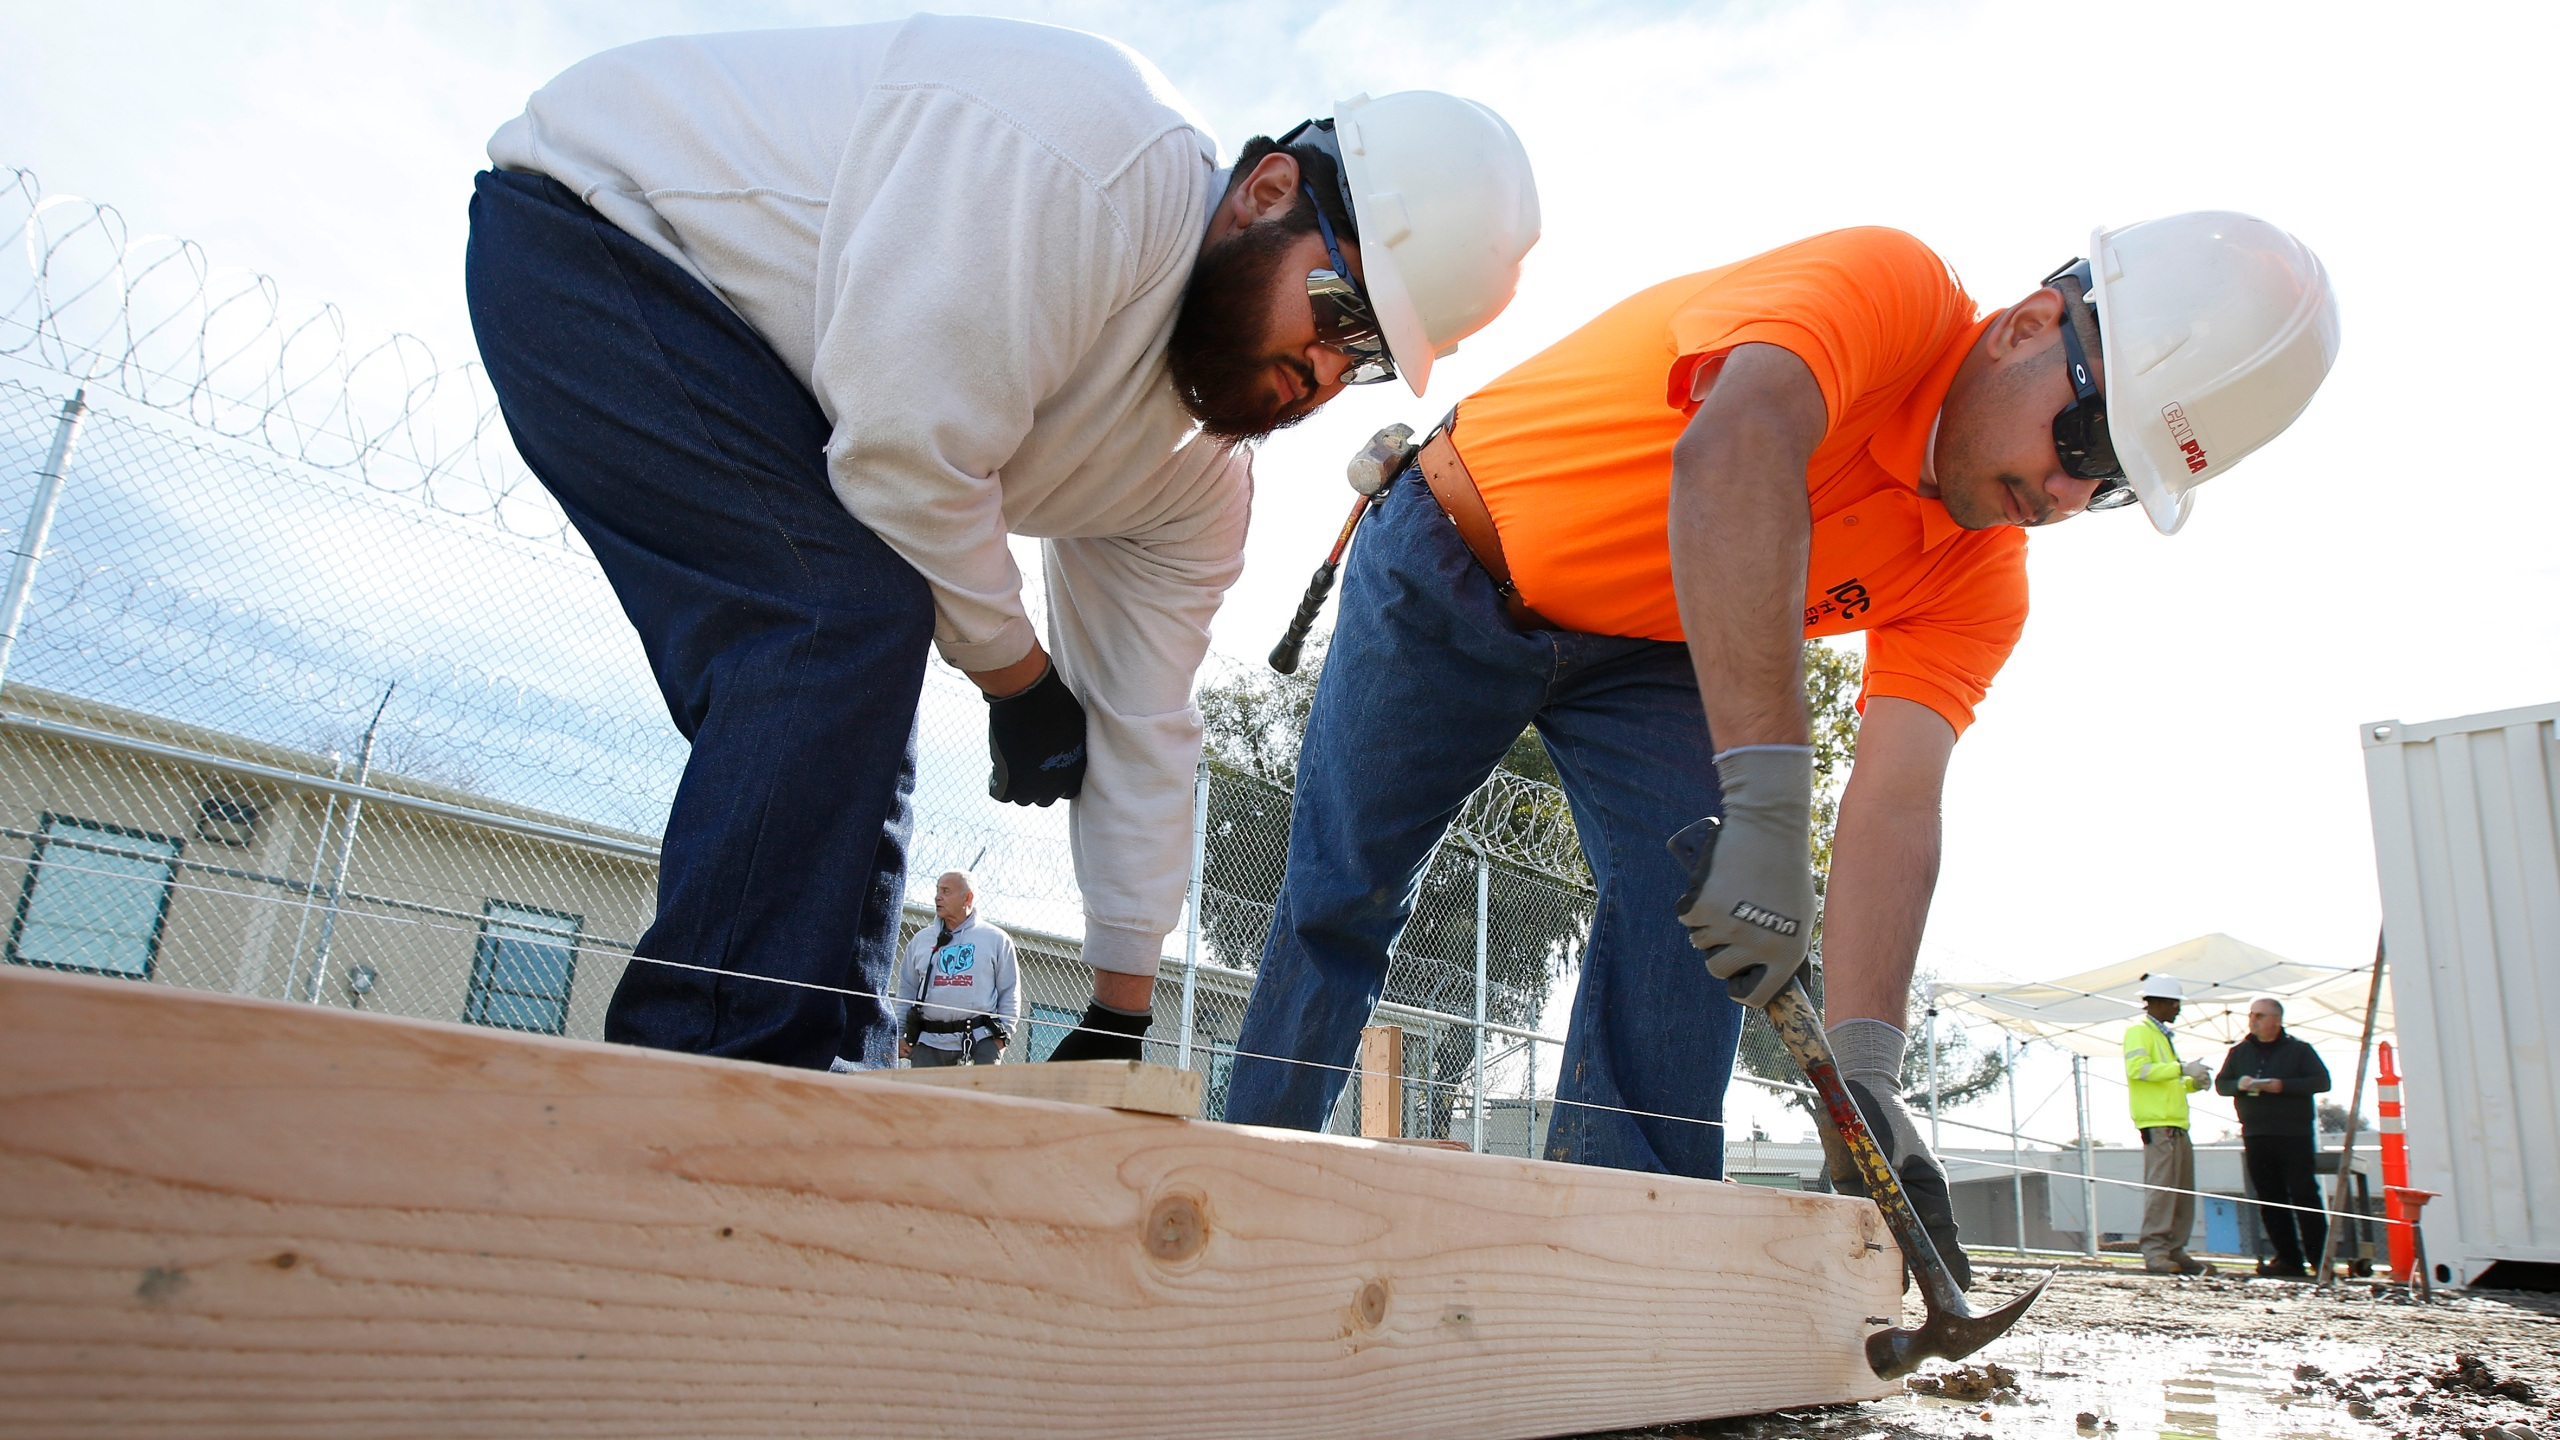 In this Jan. 22, 2019, file photo, youthful offenders Siegmond Navar, left and Gabriel Andalon construct a frame to hold concrete at one of the vocational classes at the O.H. Close Youth Correctional Facility, in Stockton, Calif. California is phasing out its state-run youth prisons and shifting the responsibilities to the counties. The state will not only keep offenders closers to home but transfer oversight form the corrections department to the Health and Human Services Agency. The three remaining state-run lockups, including there O.H Close Youth Correctional Facility, will stop admissions Thursday, July 1 and close for good two years later. (AP Photo/Rich Pedroncelli, File)